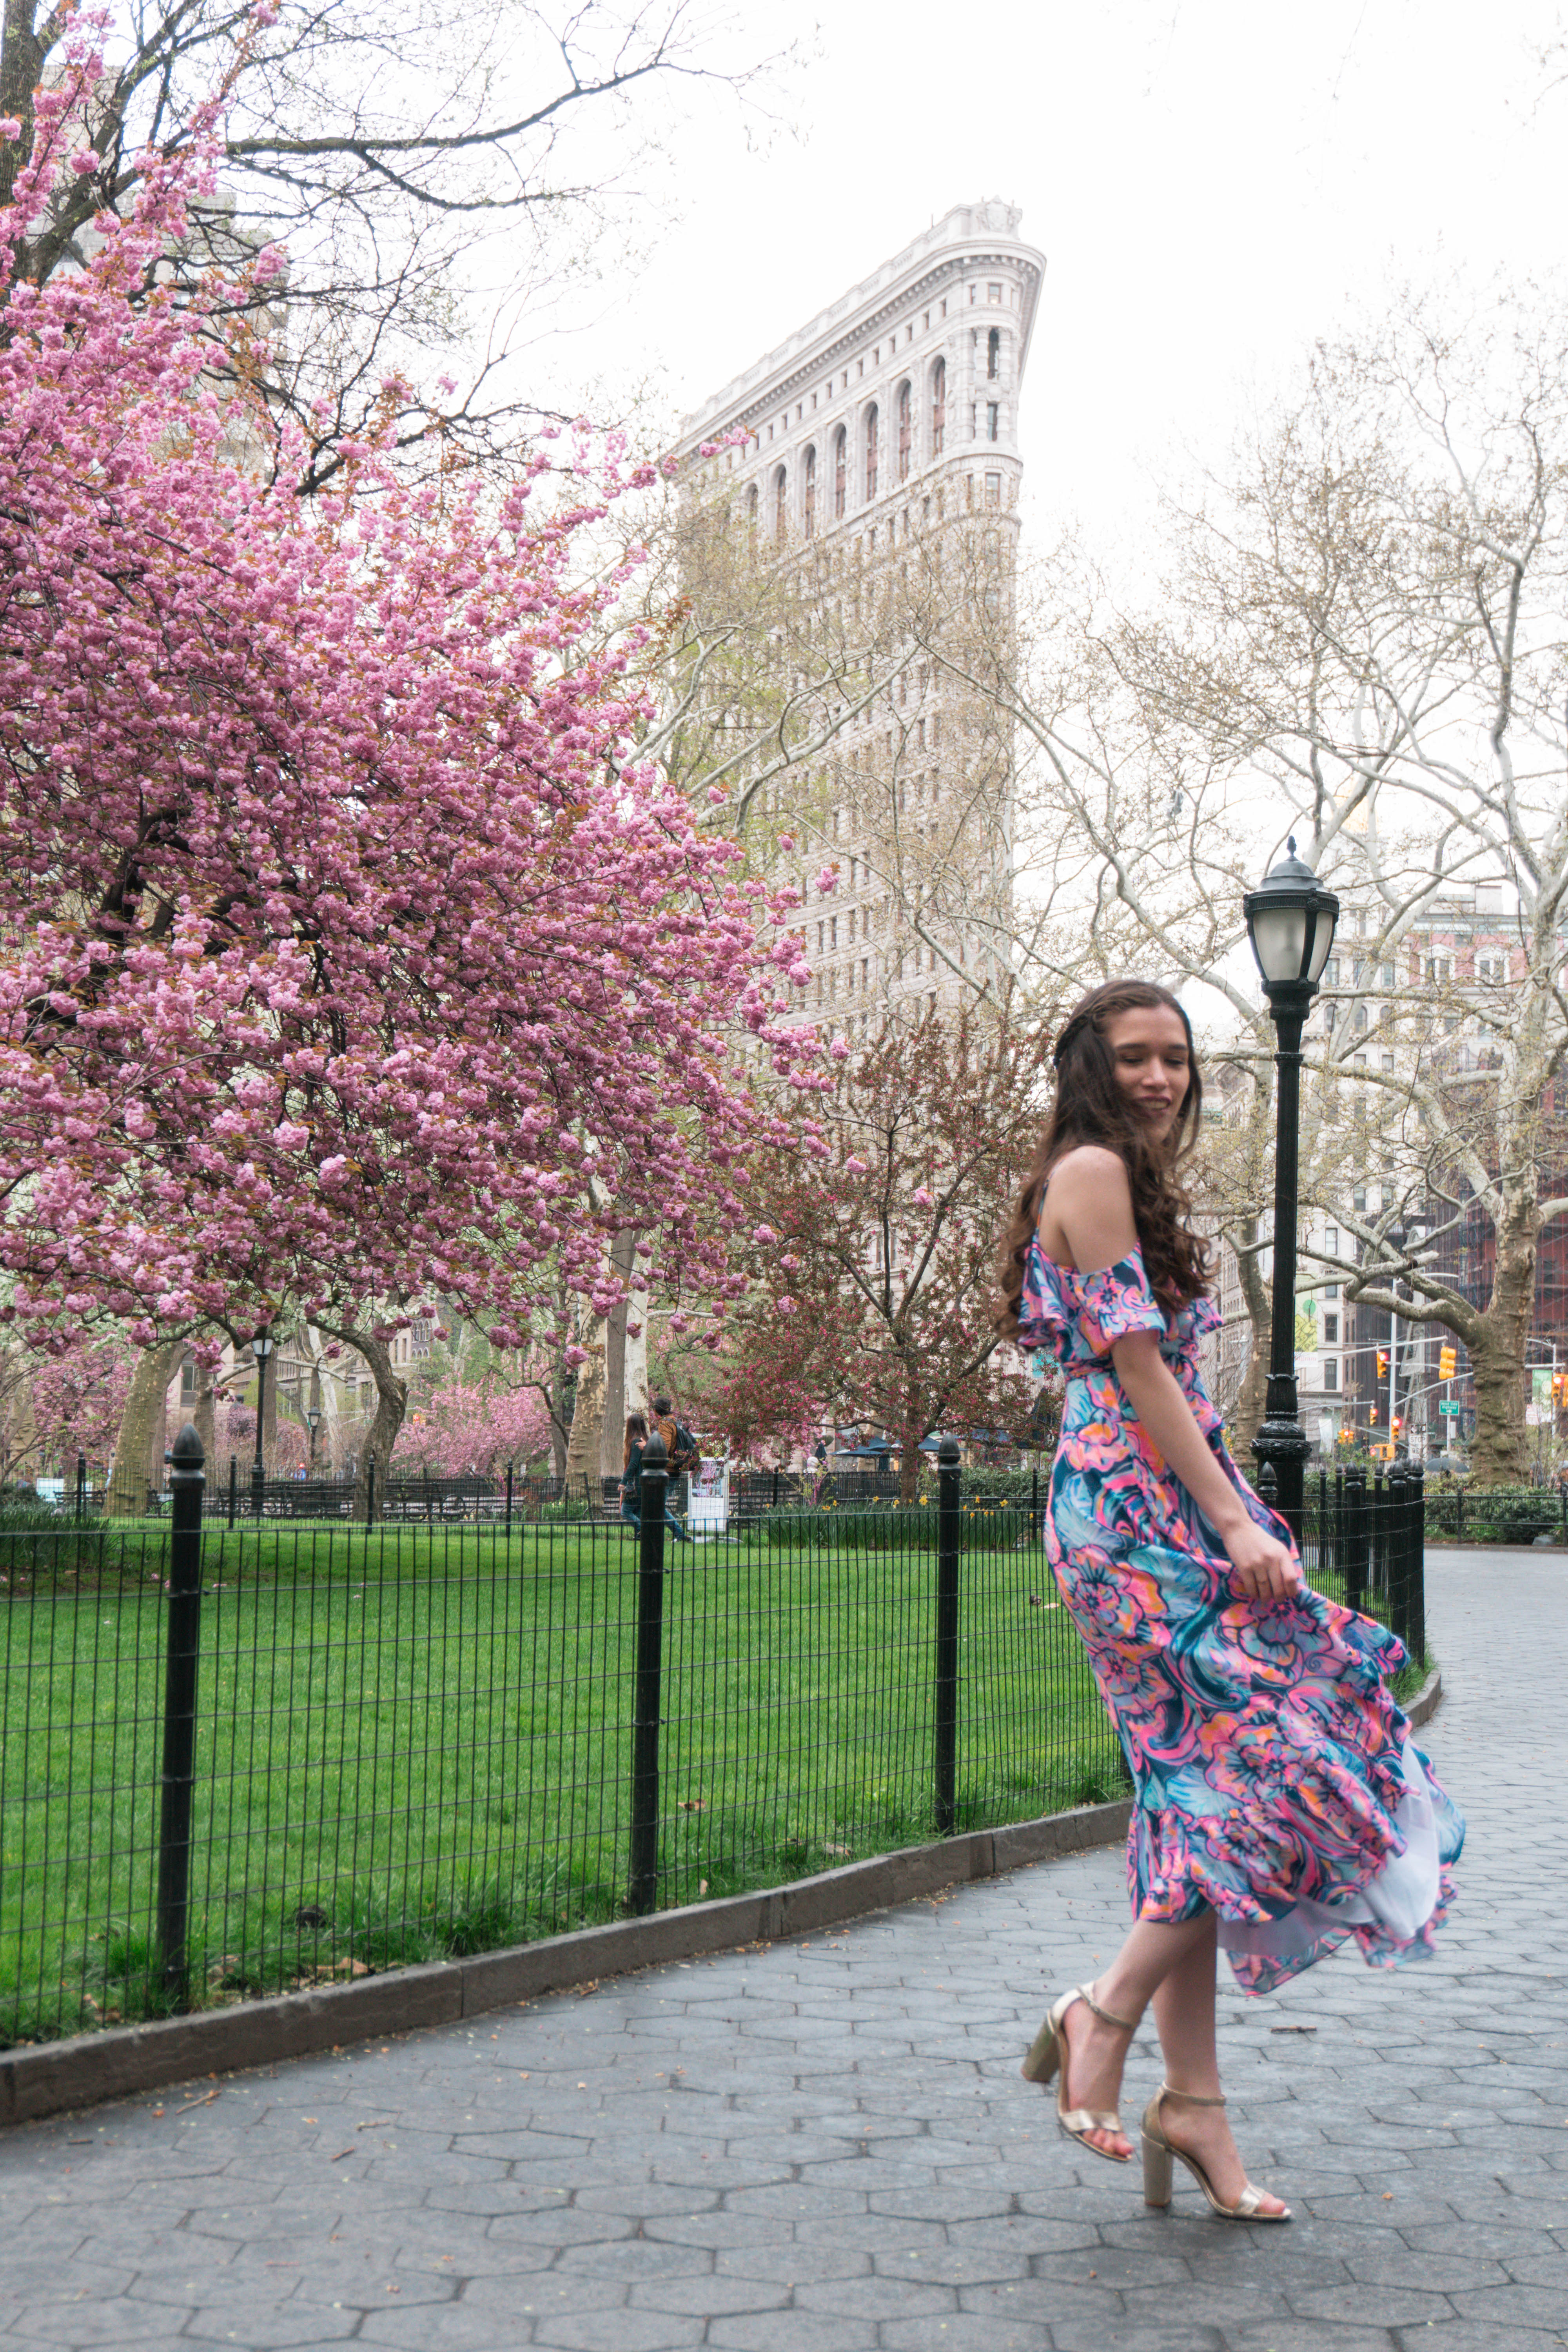 Lilly Pulitzer Marianna Dress in Boho Bateau Outside of the NYC Flatiron Building cherry blossom trees flowering blooms spring new york city wedding guest dress outfit ideas midi floral wrap dress with ruffle long brown hair curled brunette in gold strap metallic chunky heels madison square park may asian american trendy womens fashion inspiration inspo what to wear summer outdoor wedding event party target cheap shoes a new day pink blue purple orange green spinning twirling around movement portrait photography full body vacation